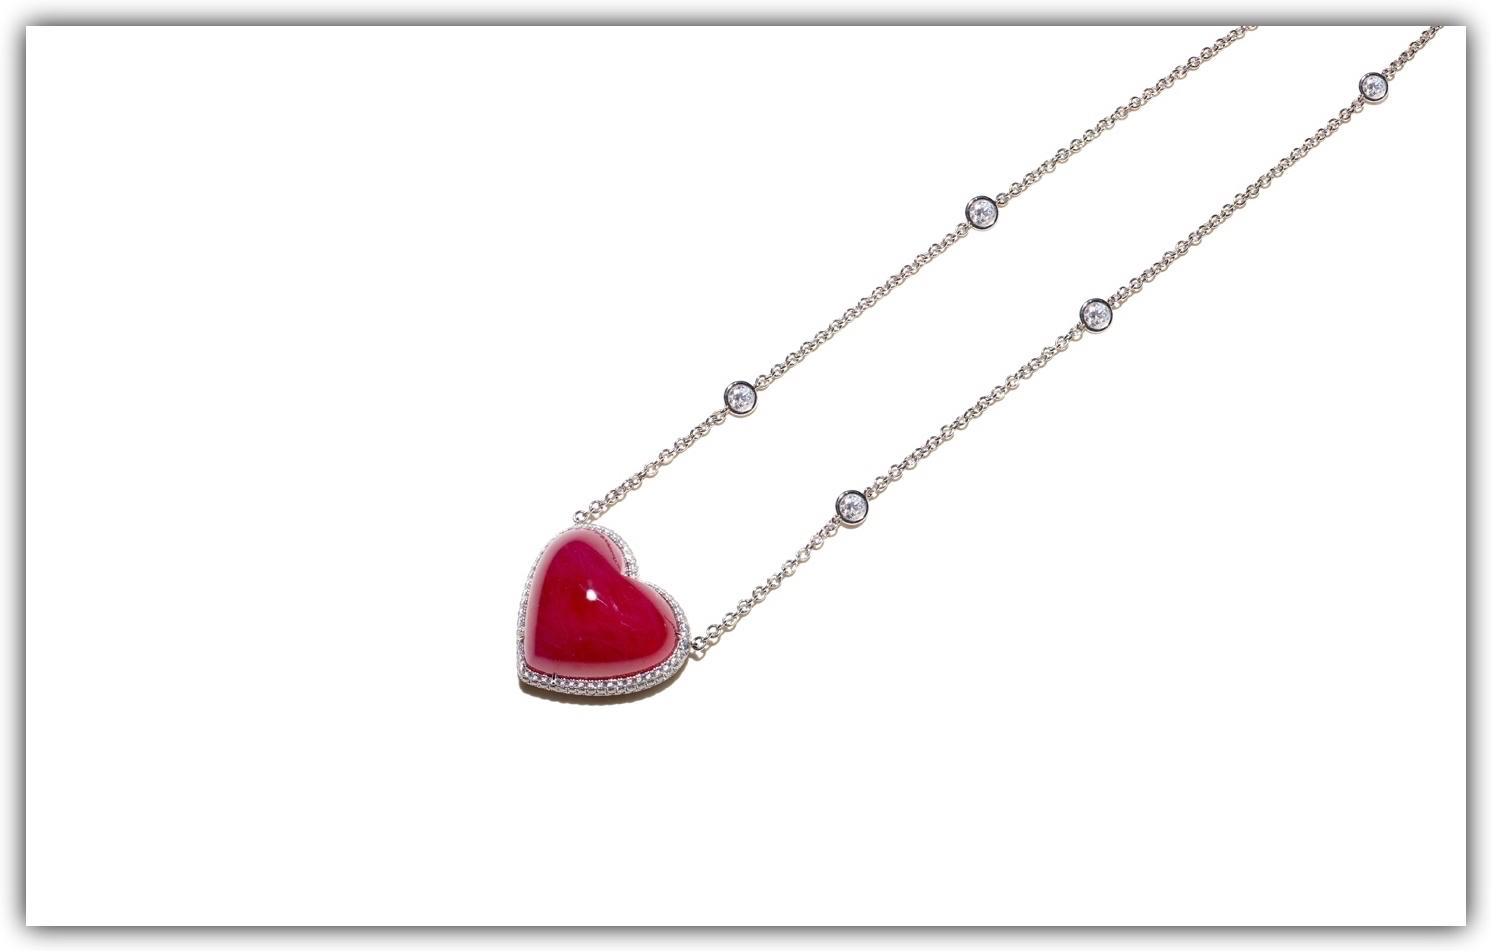 Bayco ruby and diamond pendant